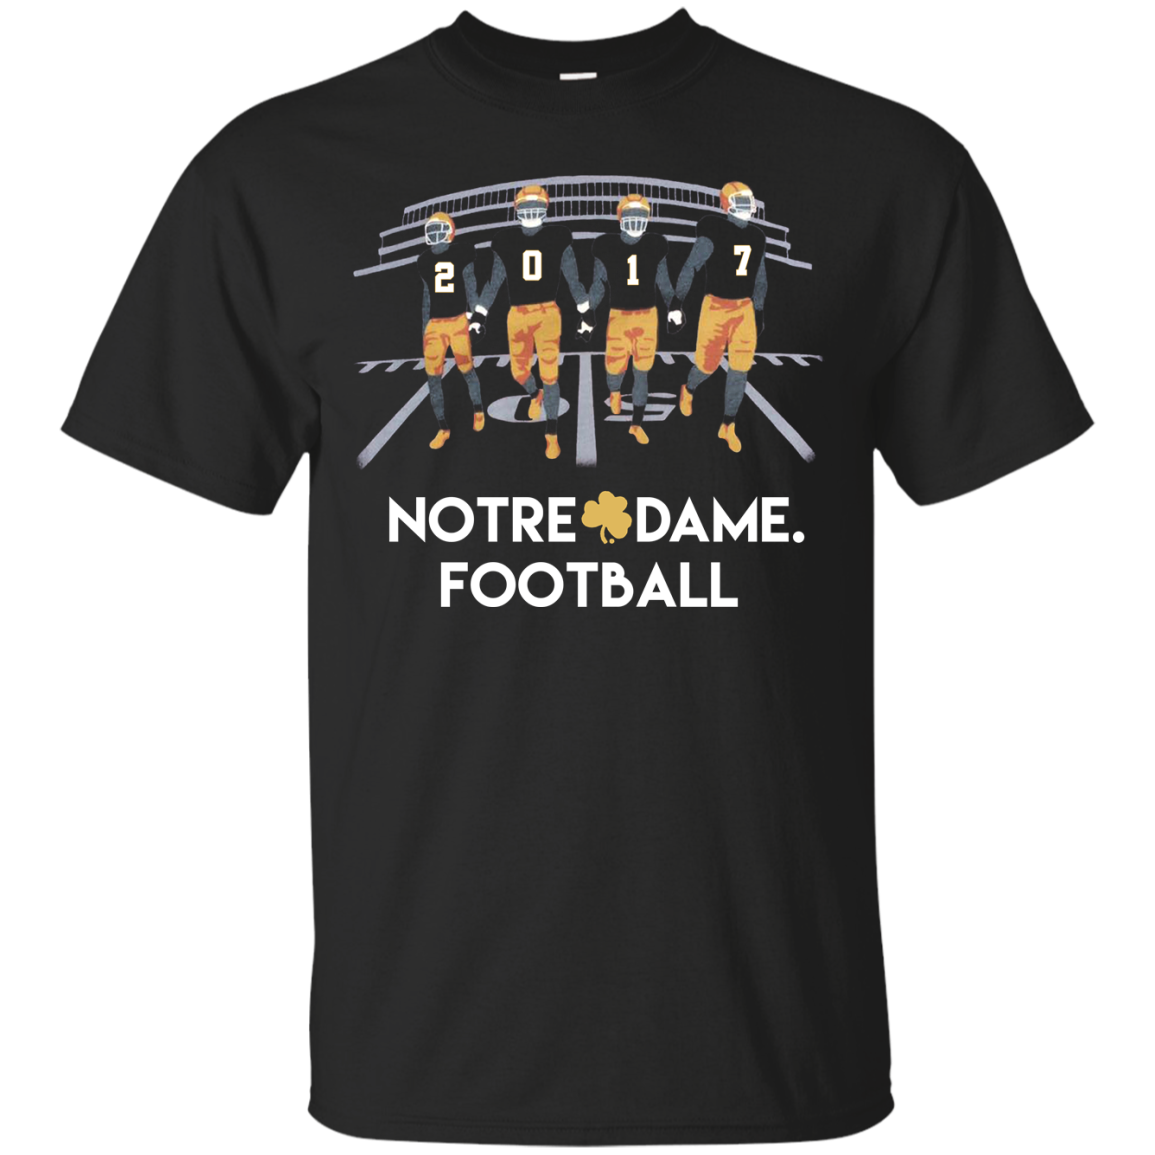 The Shirt 2017 Unveiled